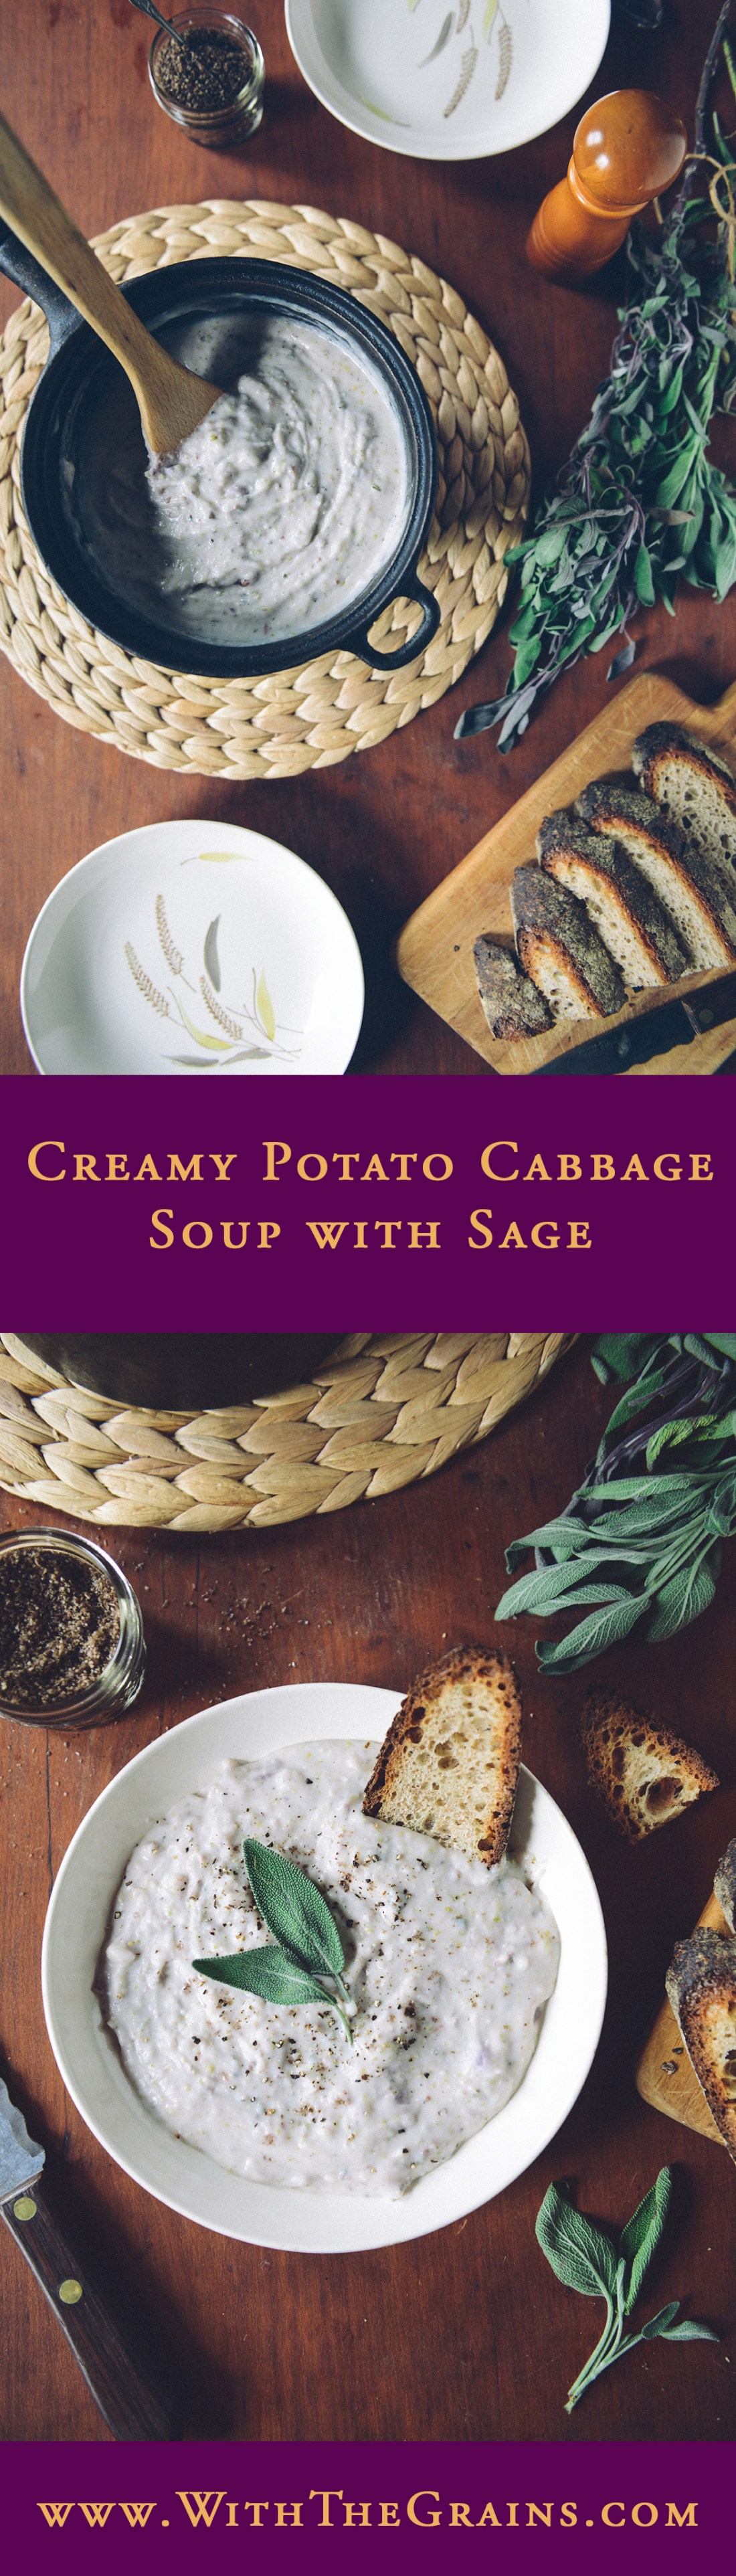 Creamy Potato Cabbage Soup with Sage // www.WithTheGrains.com